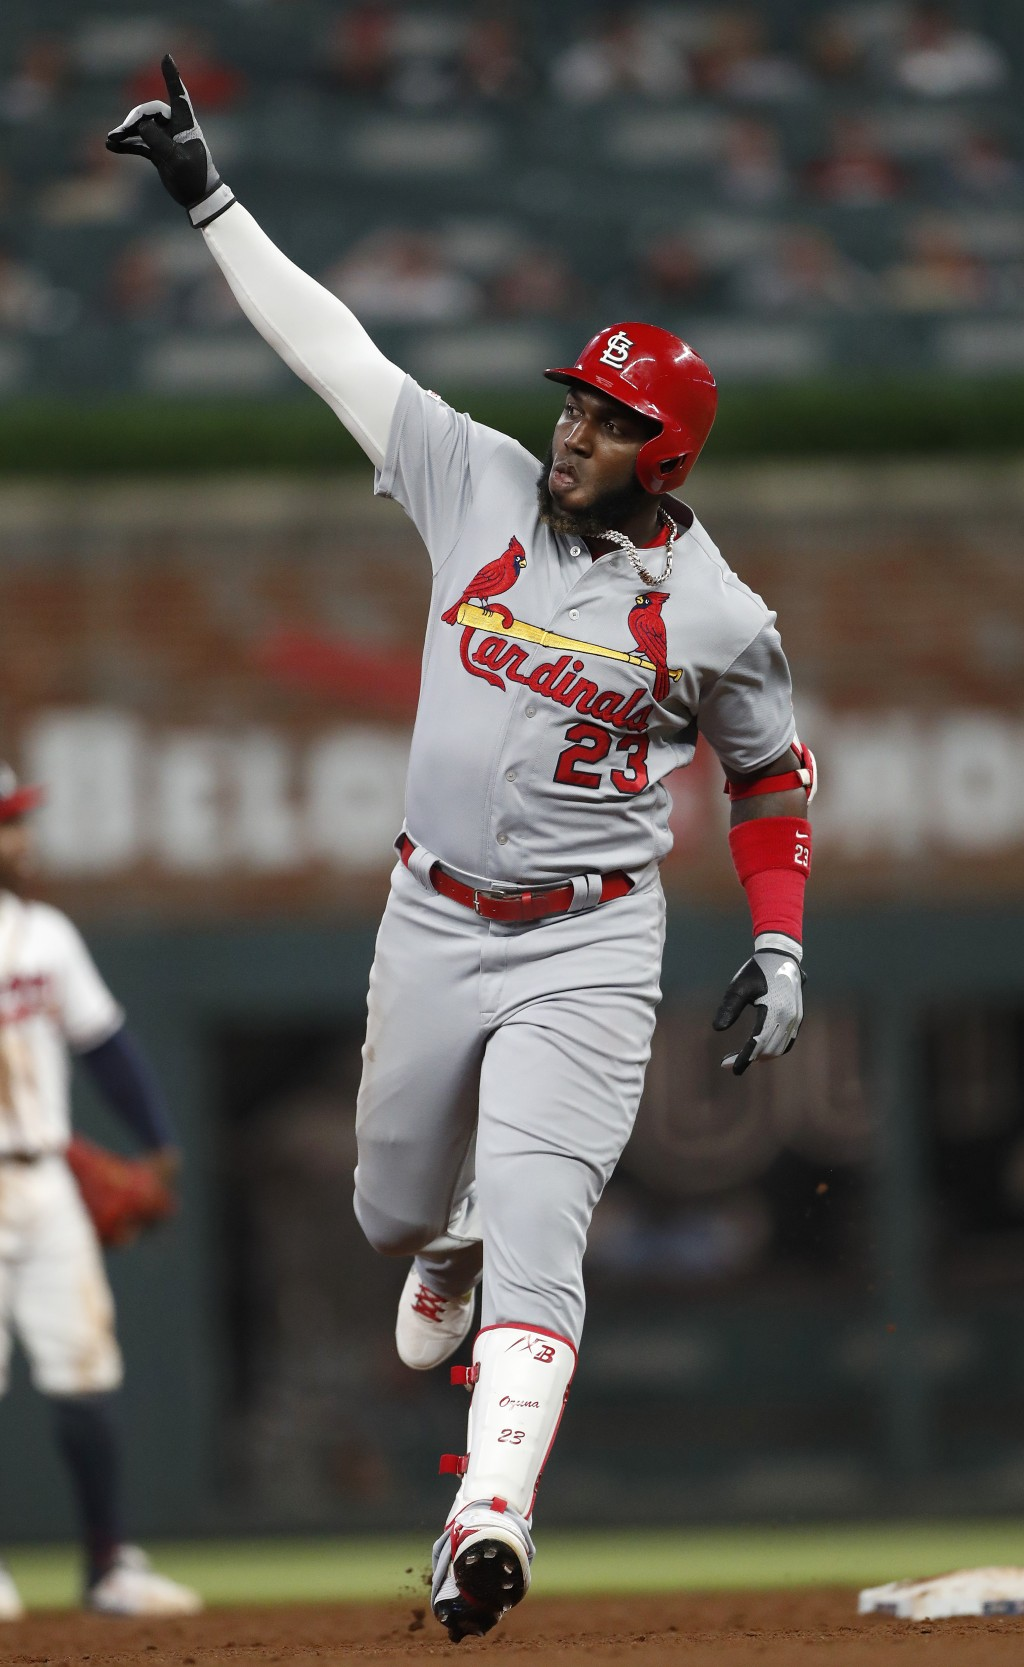 St. Louis Cardinals' Marcell Ozuna gestures as he rounds the bases after hitting a solo home run in the sixth inning of the team's baseball game again